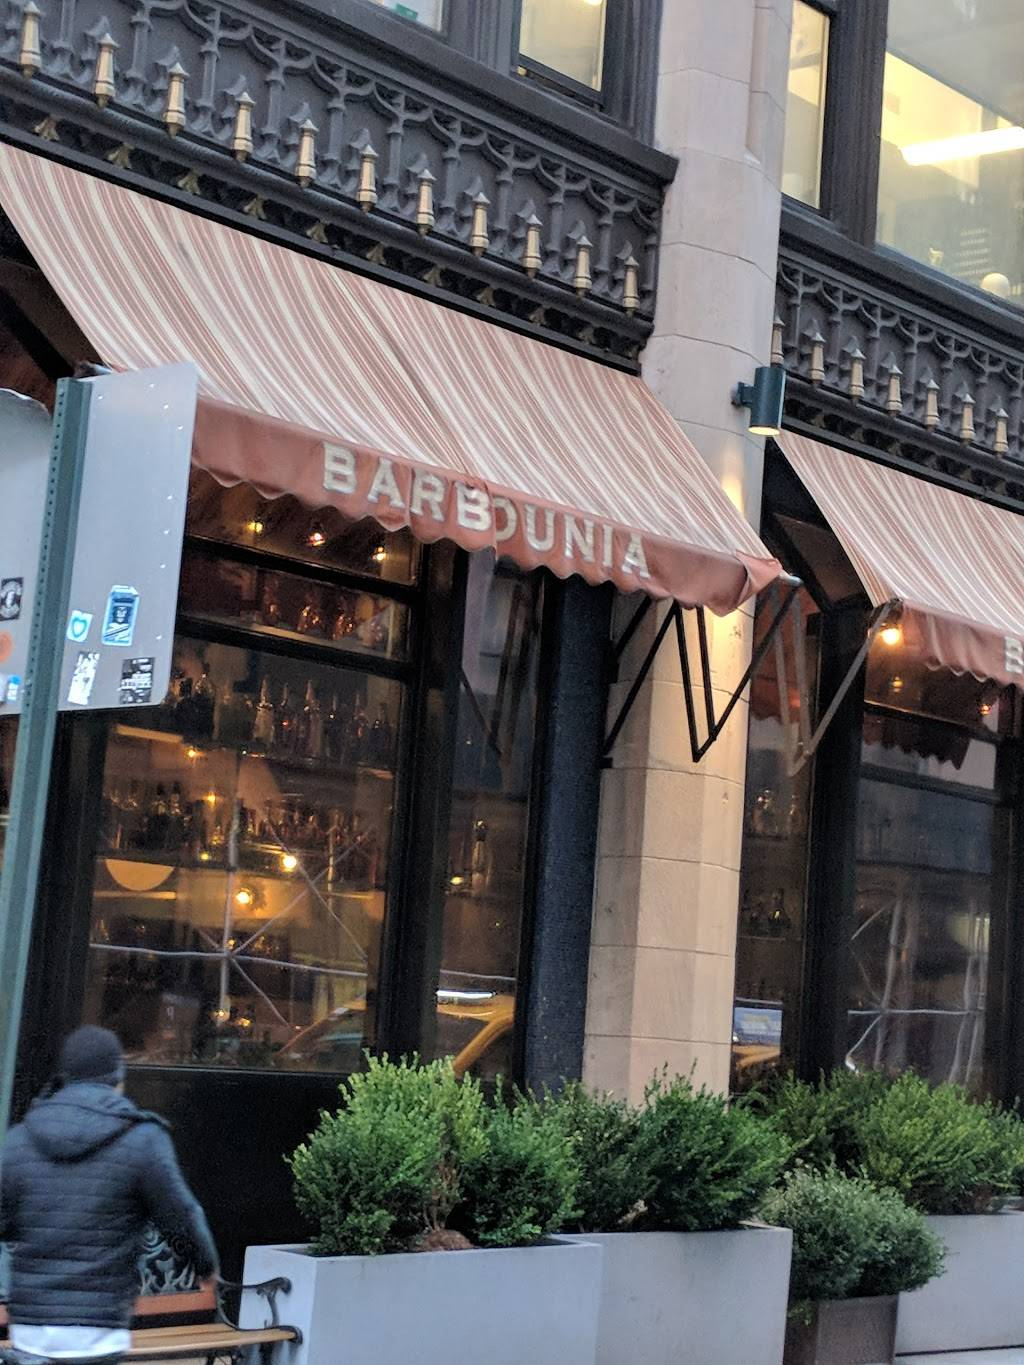 Barbounia | restaurant | 250 Park Ave S, New York, NY 10003, USA | 2129950242 OR +1 212-995-0242